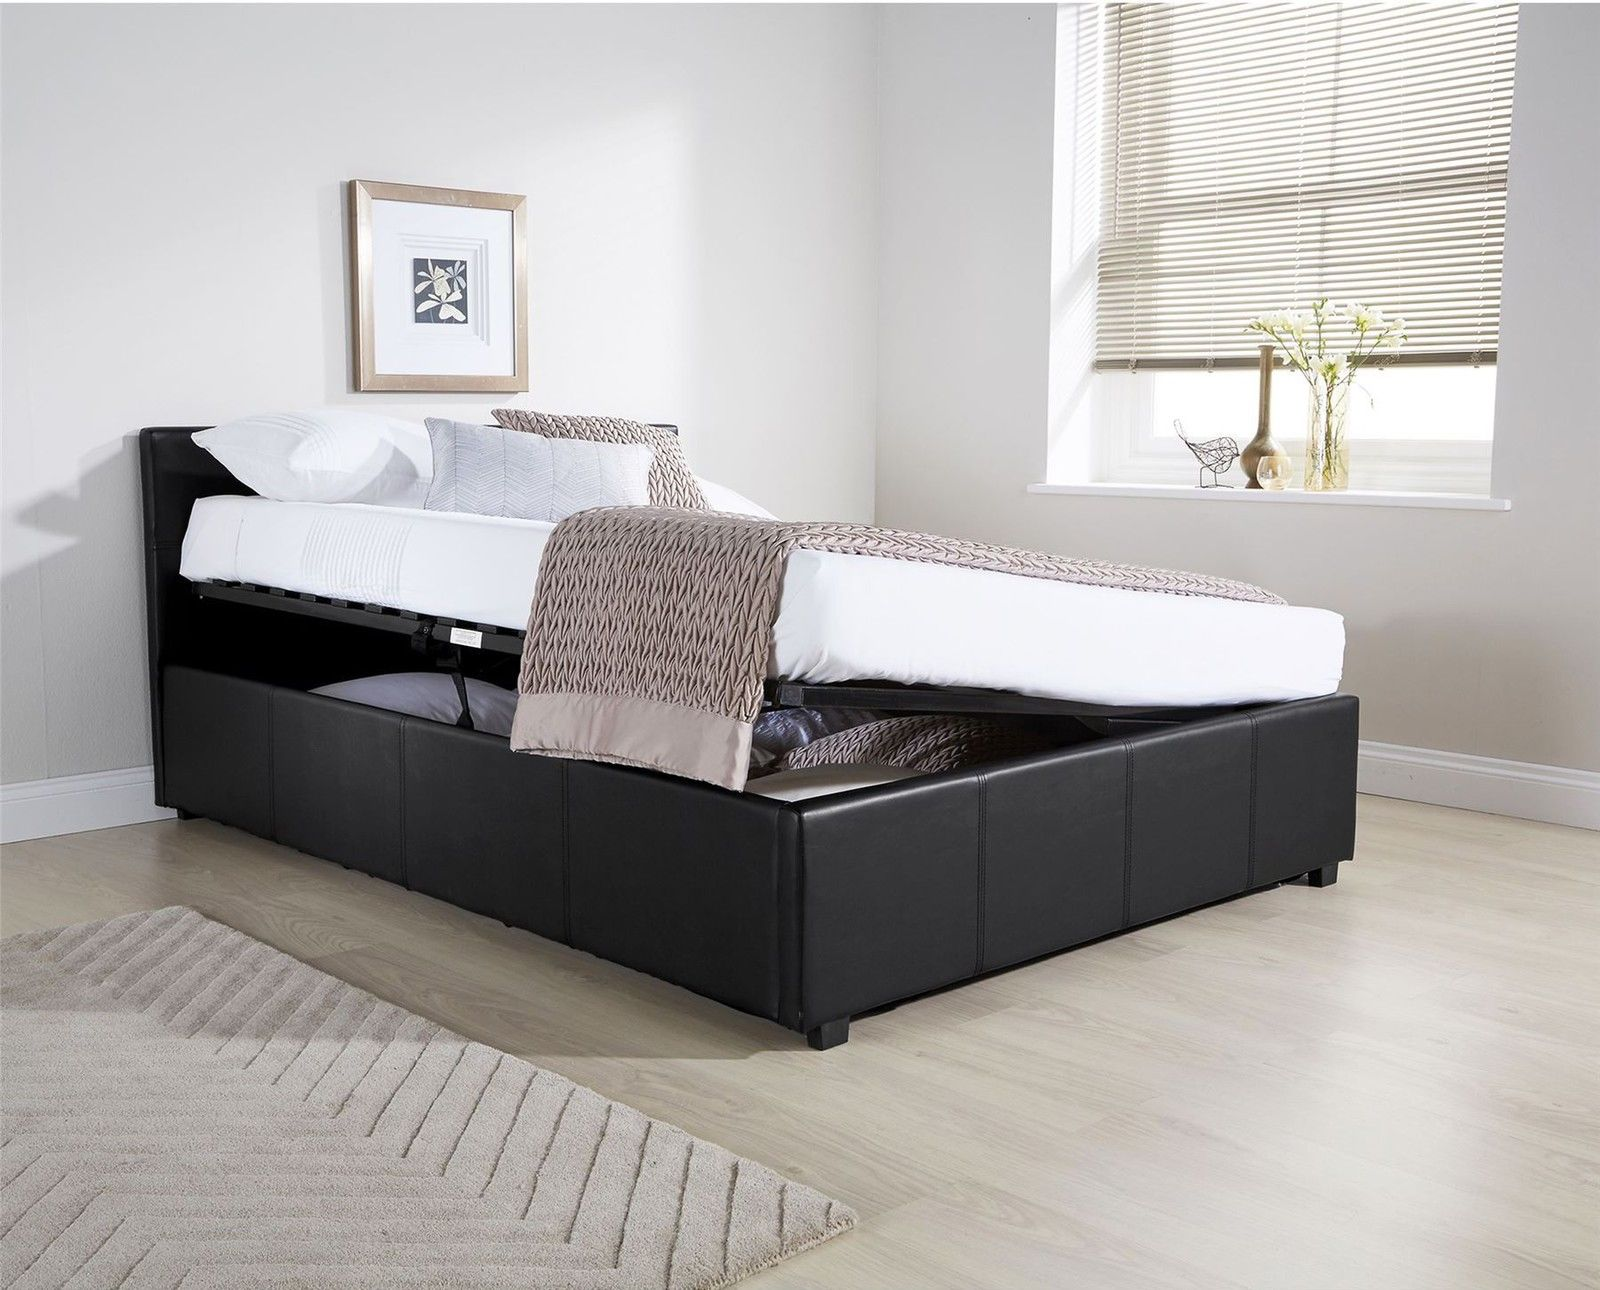 OTTOMAN SIDE LIFT BED GAS LIFT STORAGE BED FAUX LEATHER 3FT 4FT 4FT6 5FT BLACK